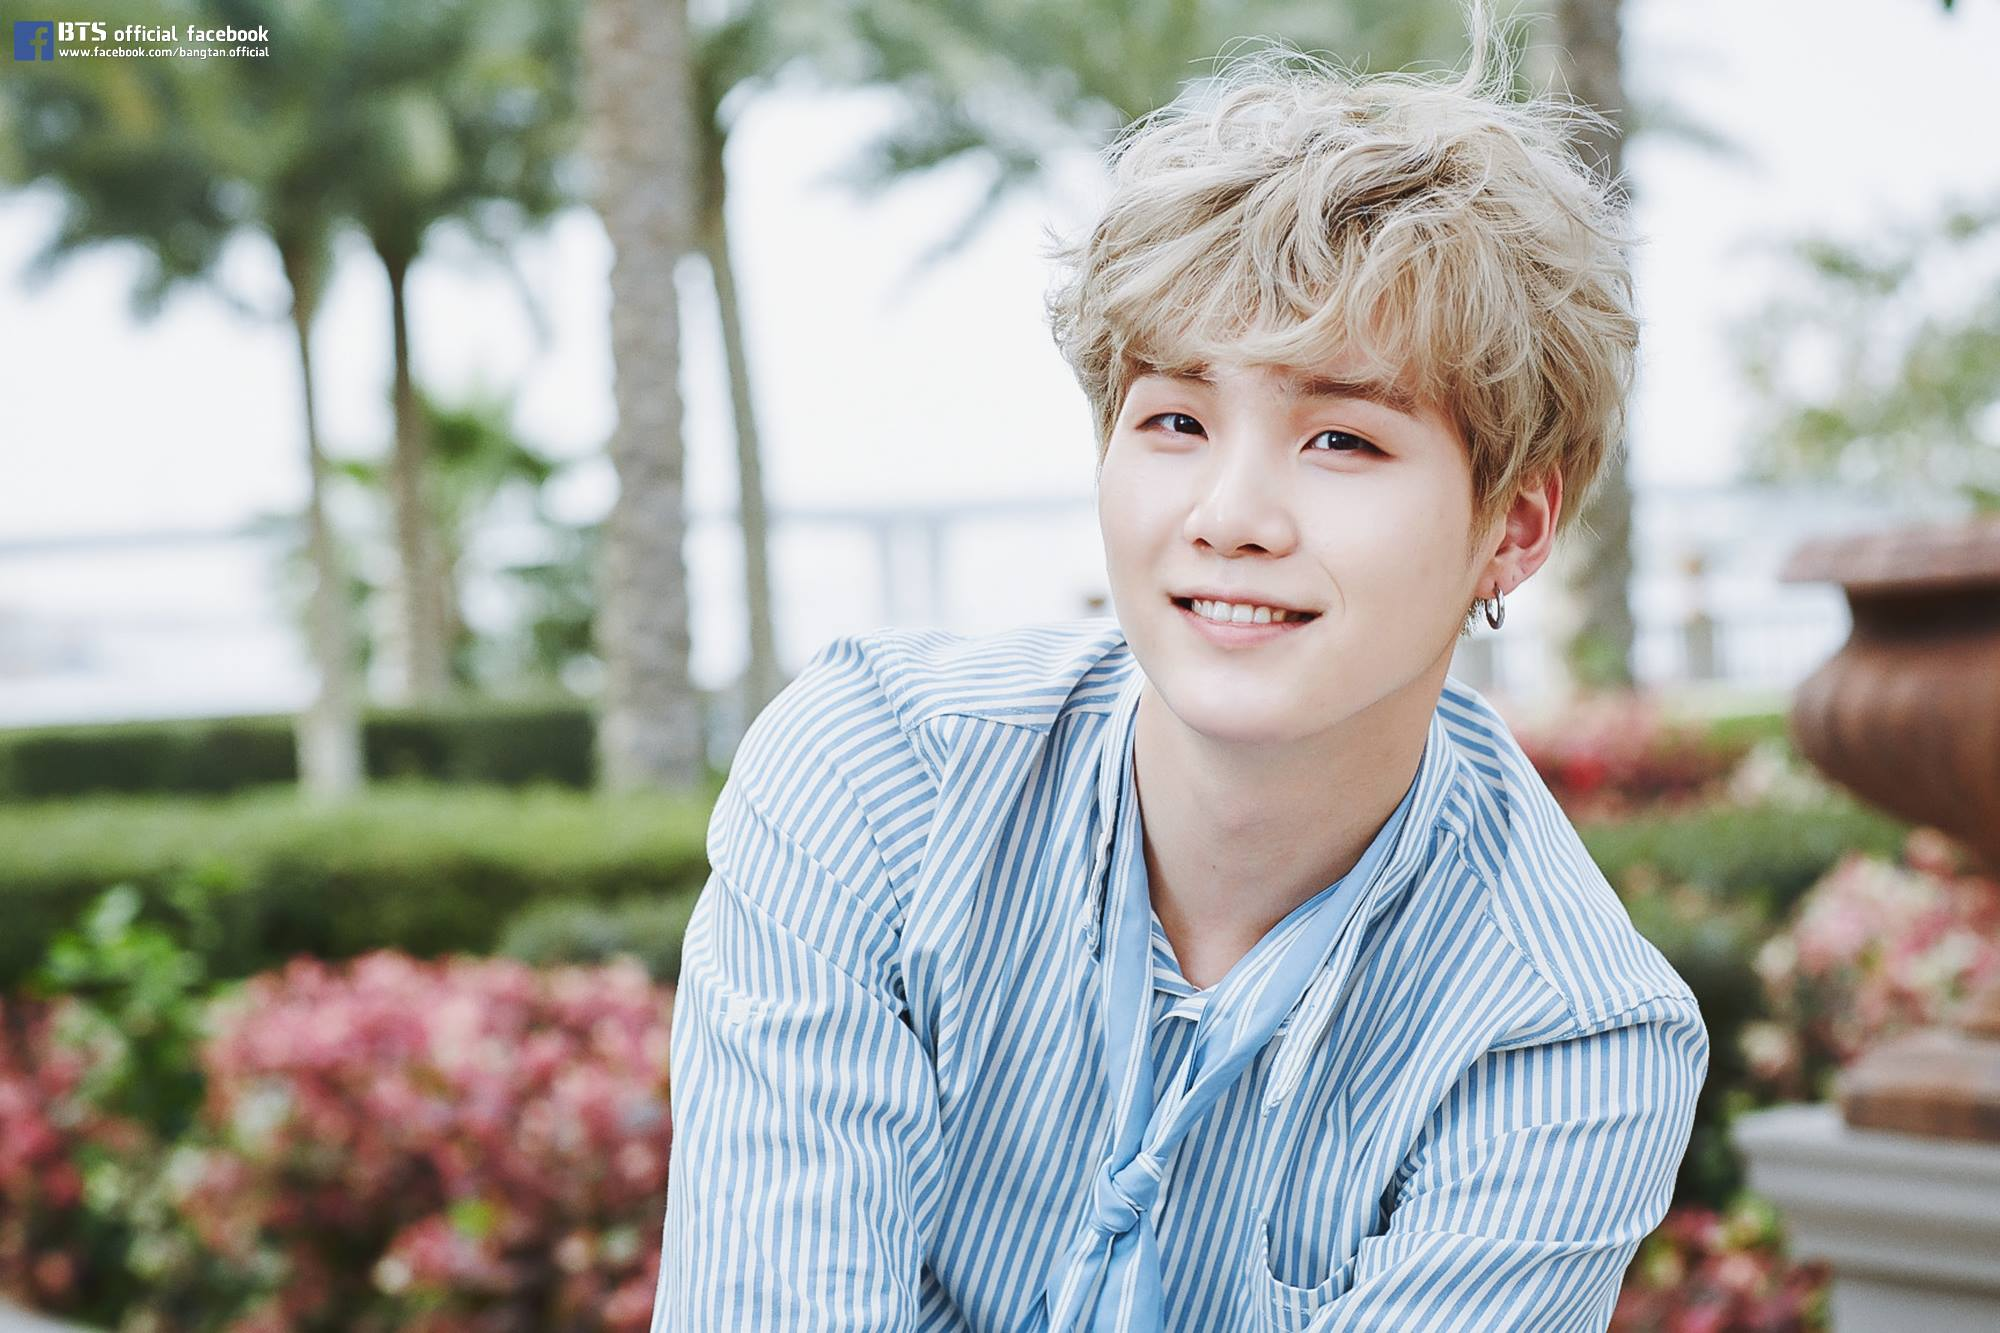 Bts Suga Reveals The Secret Behind His Stage Name Koreaboo